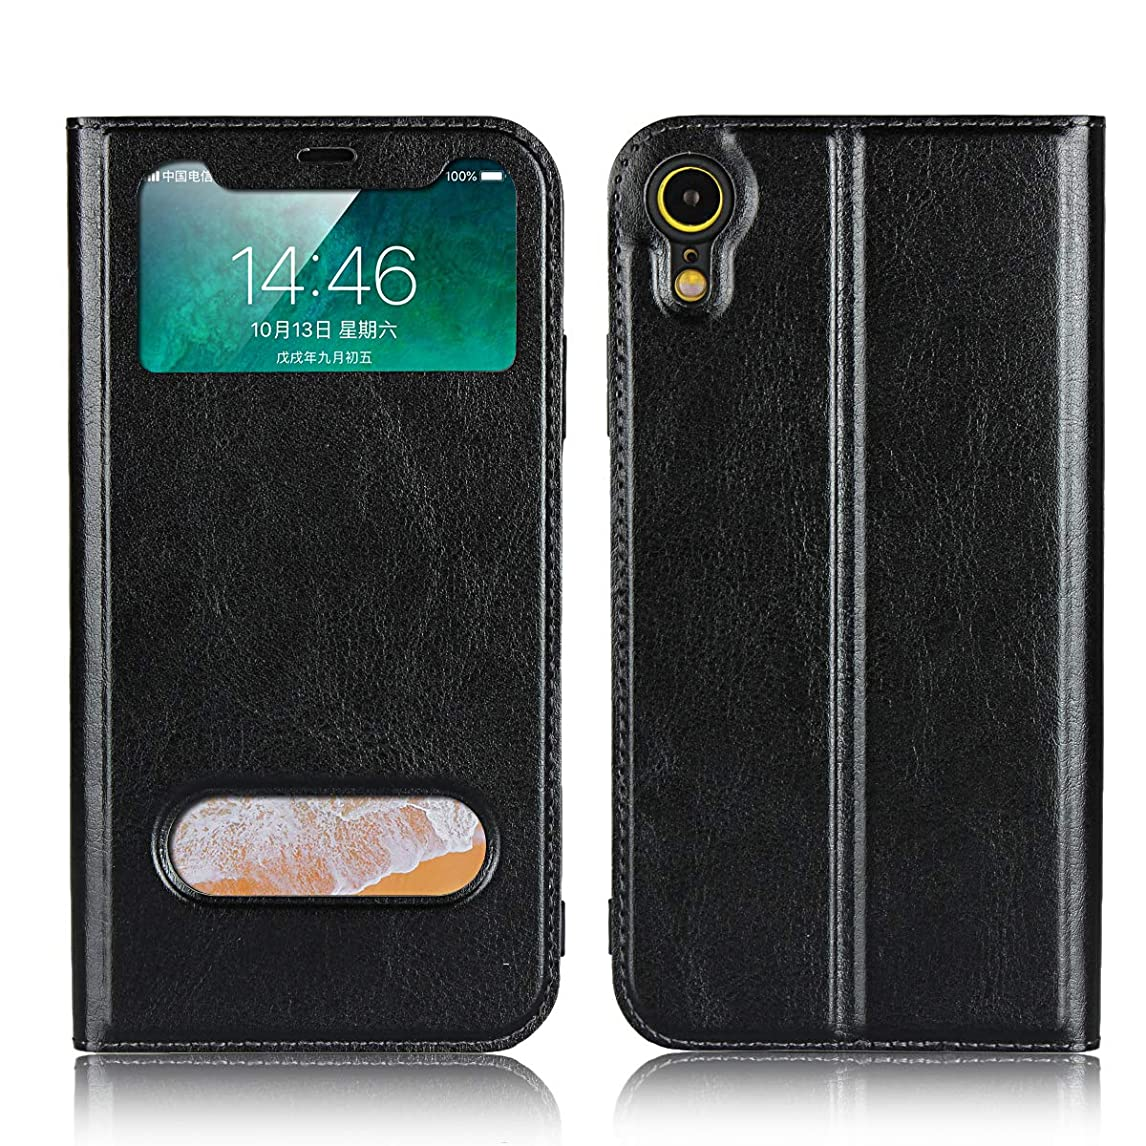 Jaorty for Apple iPhone XR case, PU Leather Flip Case with View Window Stand Kicstand Smart Sleep/Wakeup Magnetic Closure Soft TPU Bumper Slim Leather Case for iPhone XR,Black hbcio22333050973